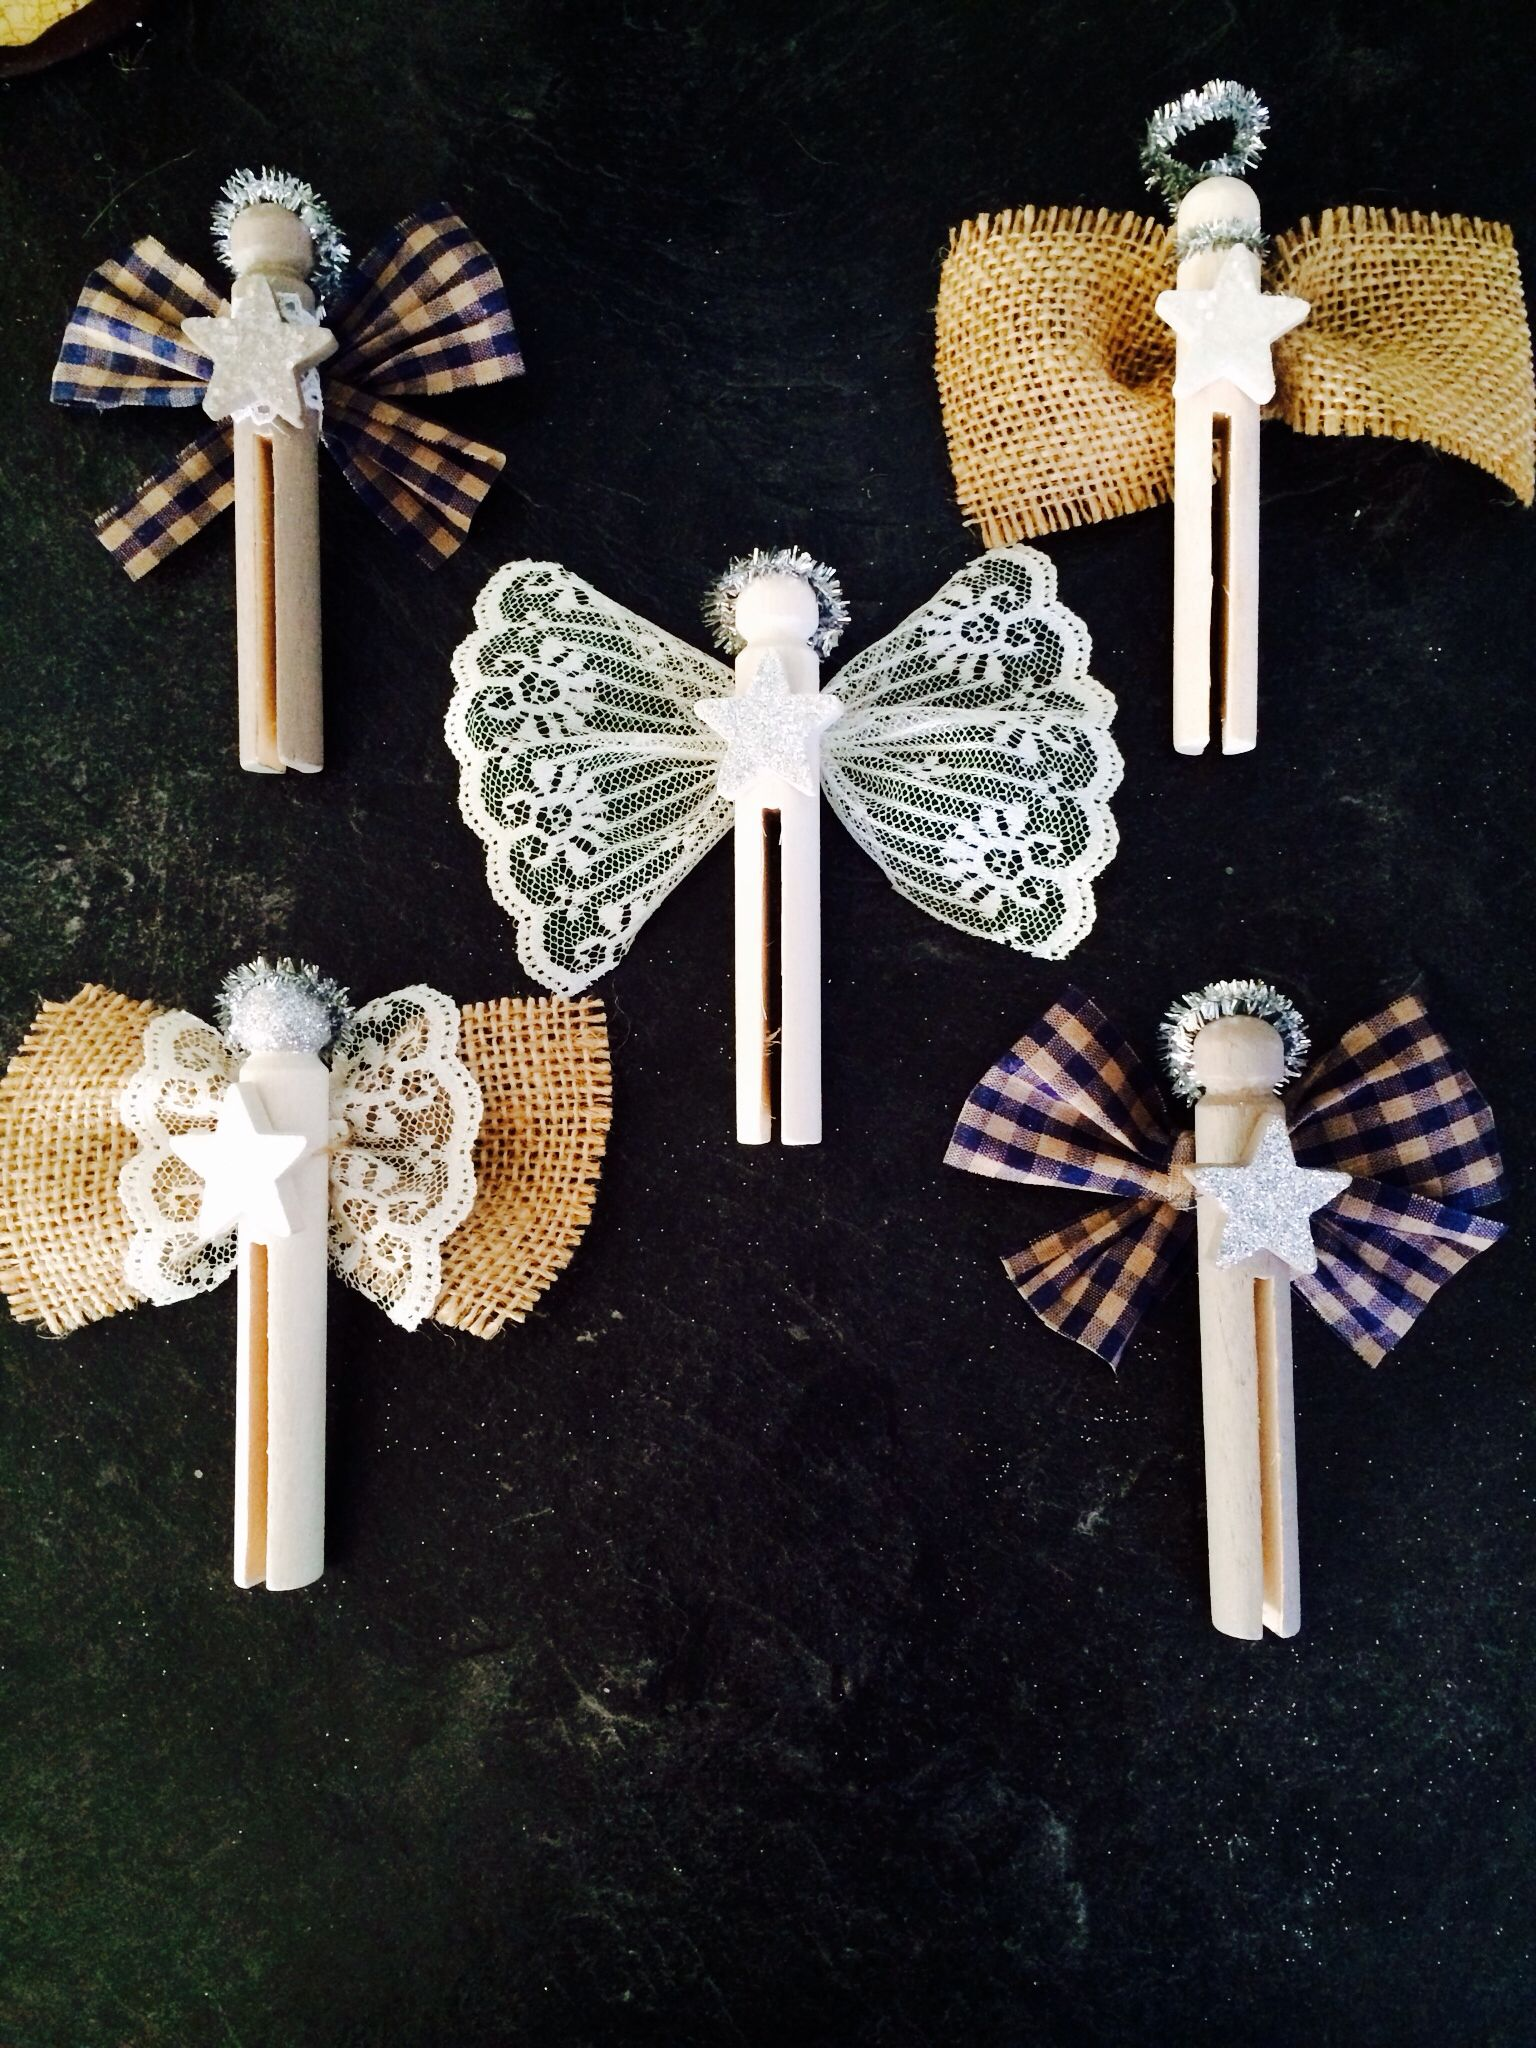 Clothespin Christmas Angels Christmas Clothespins Christmas Crafts Christmas Ornament Crafts